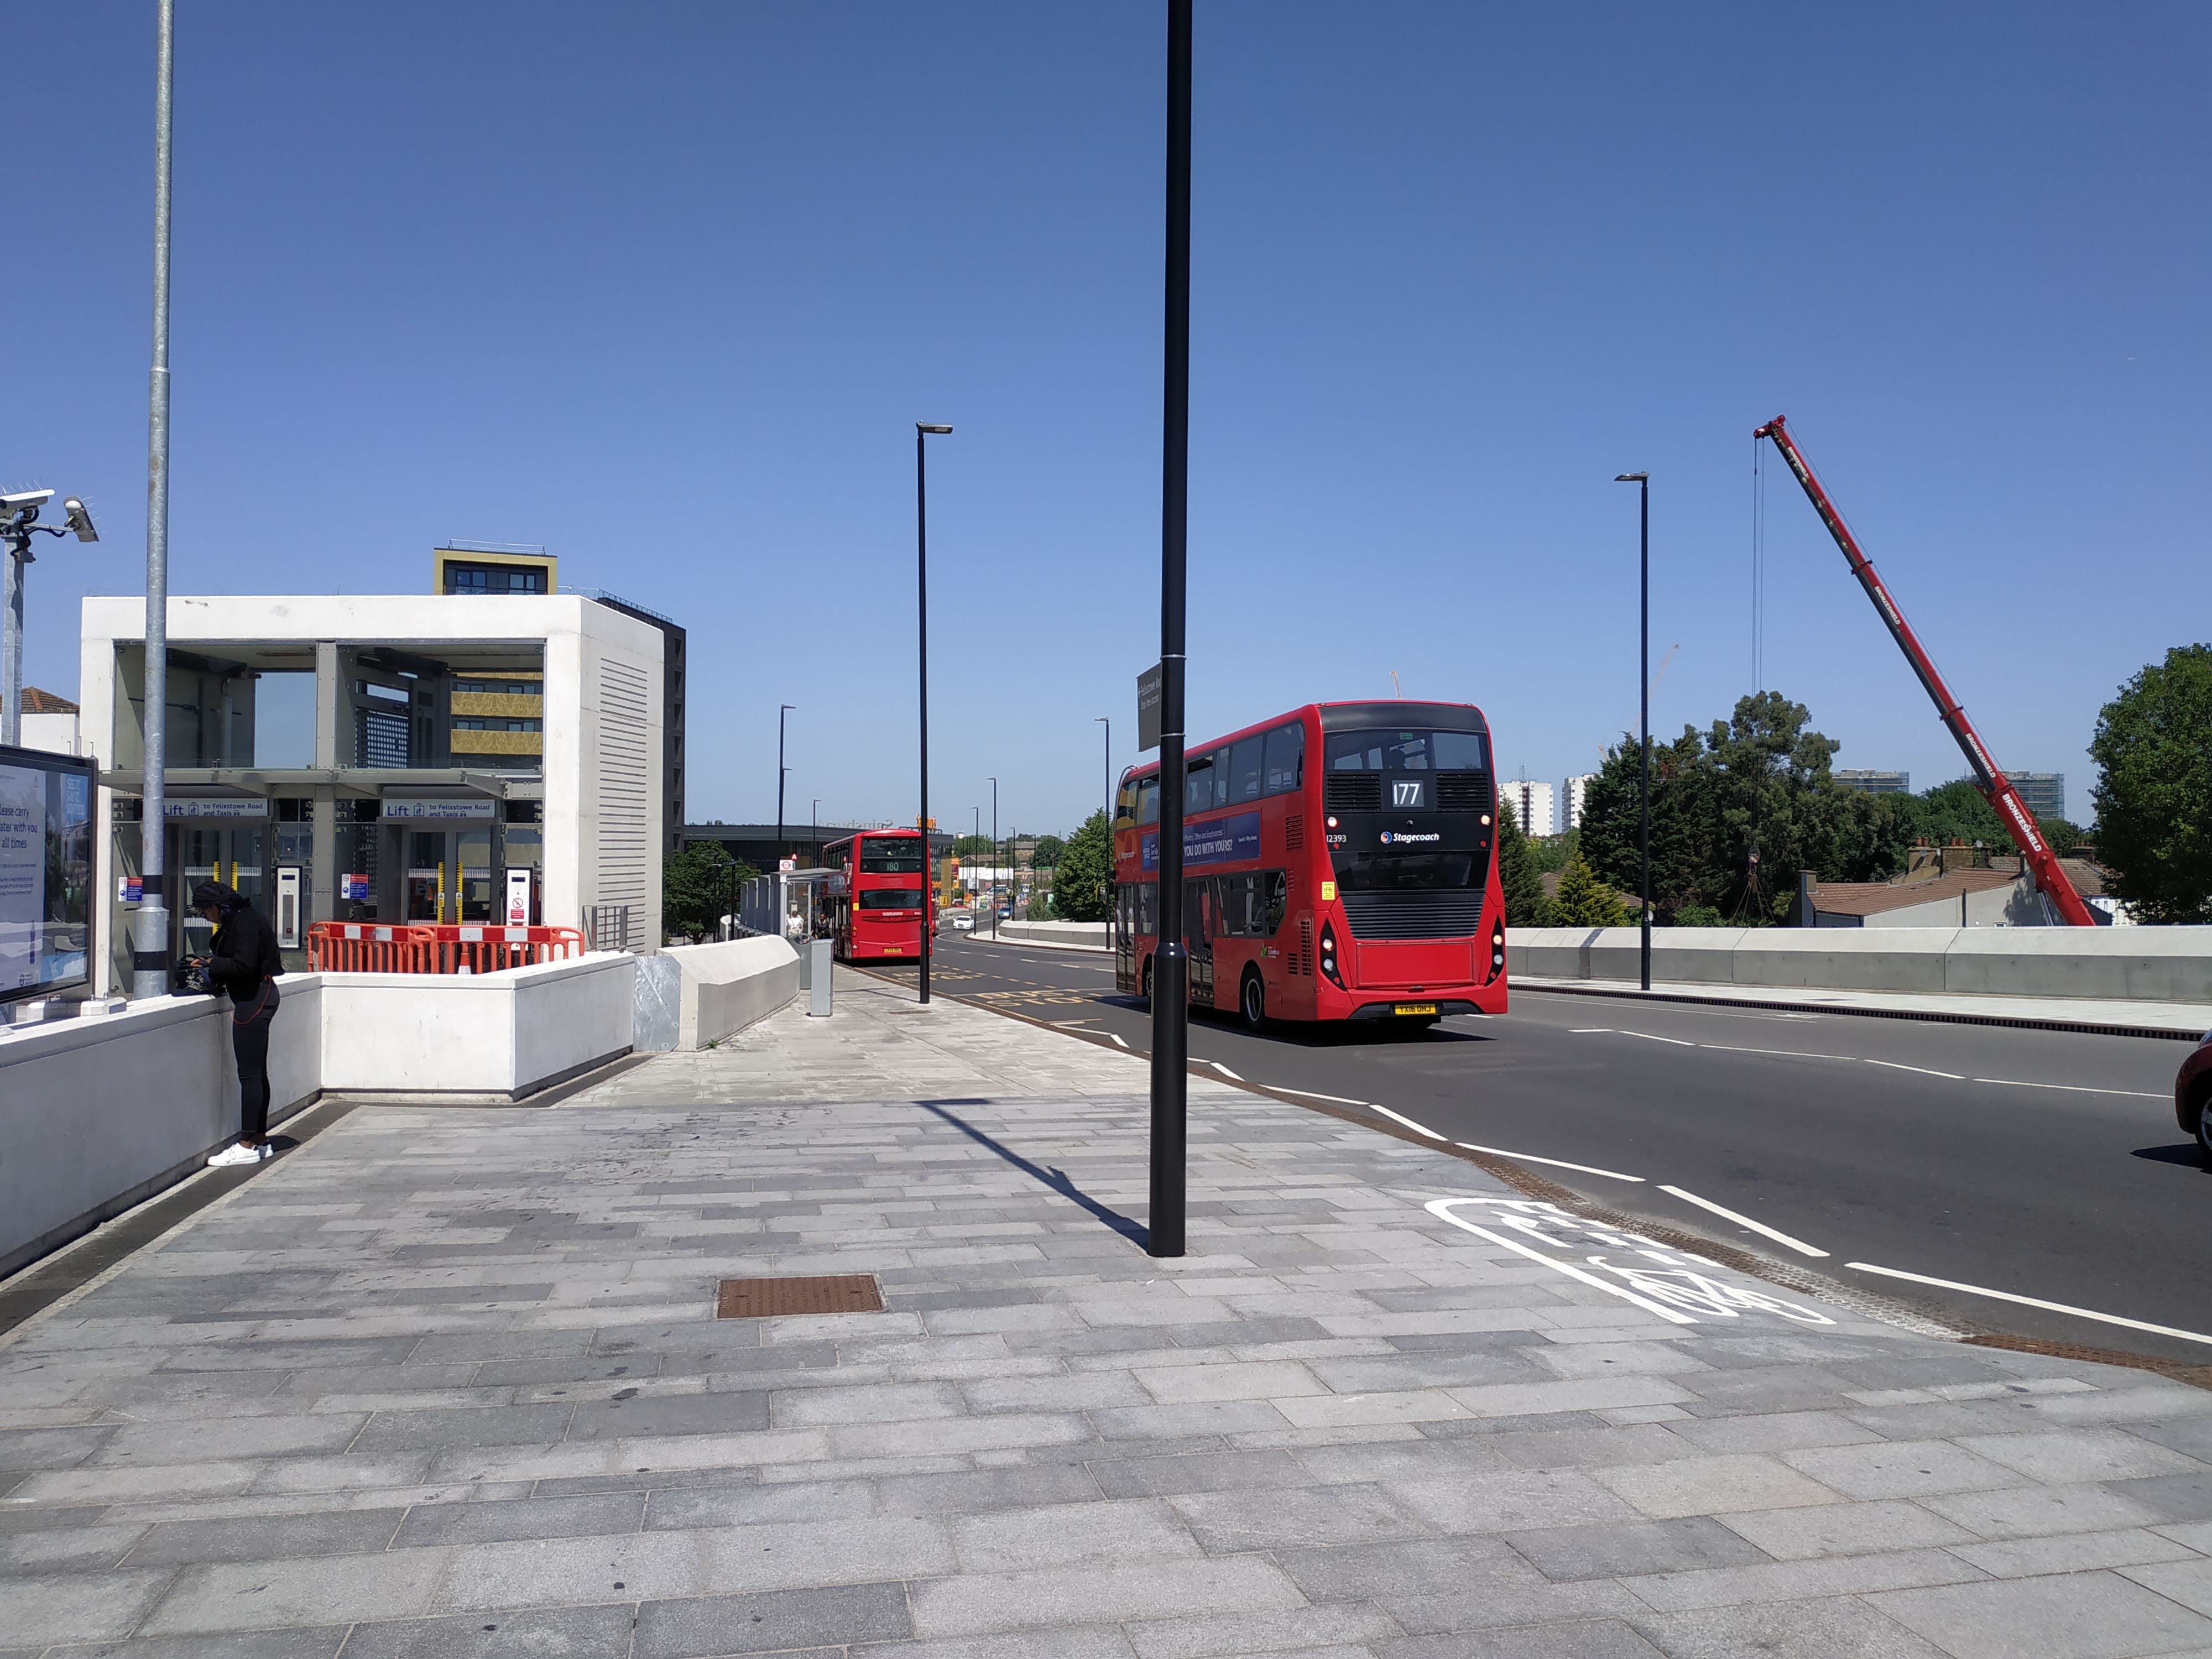 New bus route 301 linking Abbey Wood Crossrail to Bexleyheath starts this week